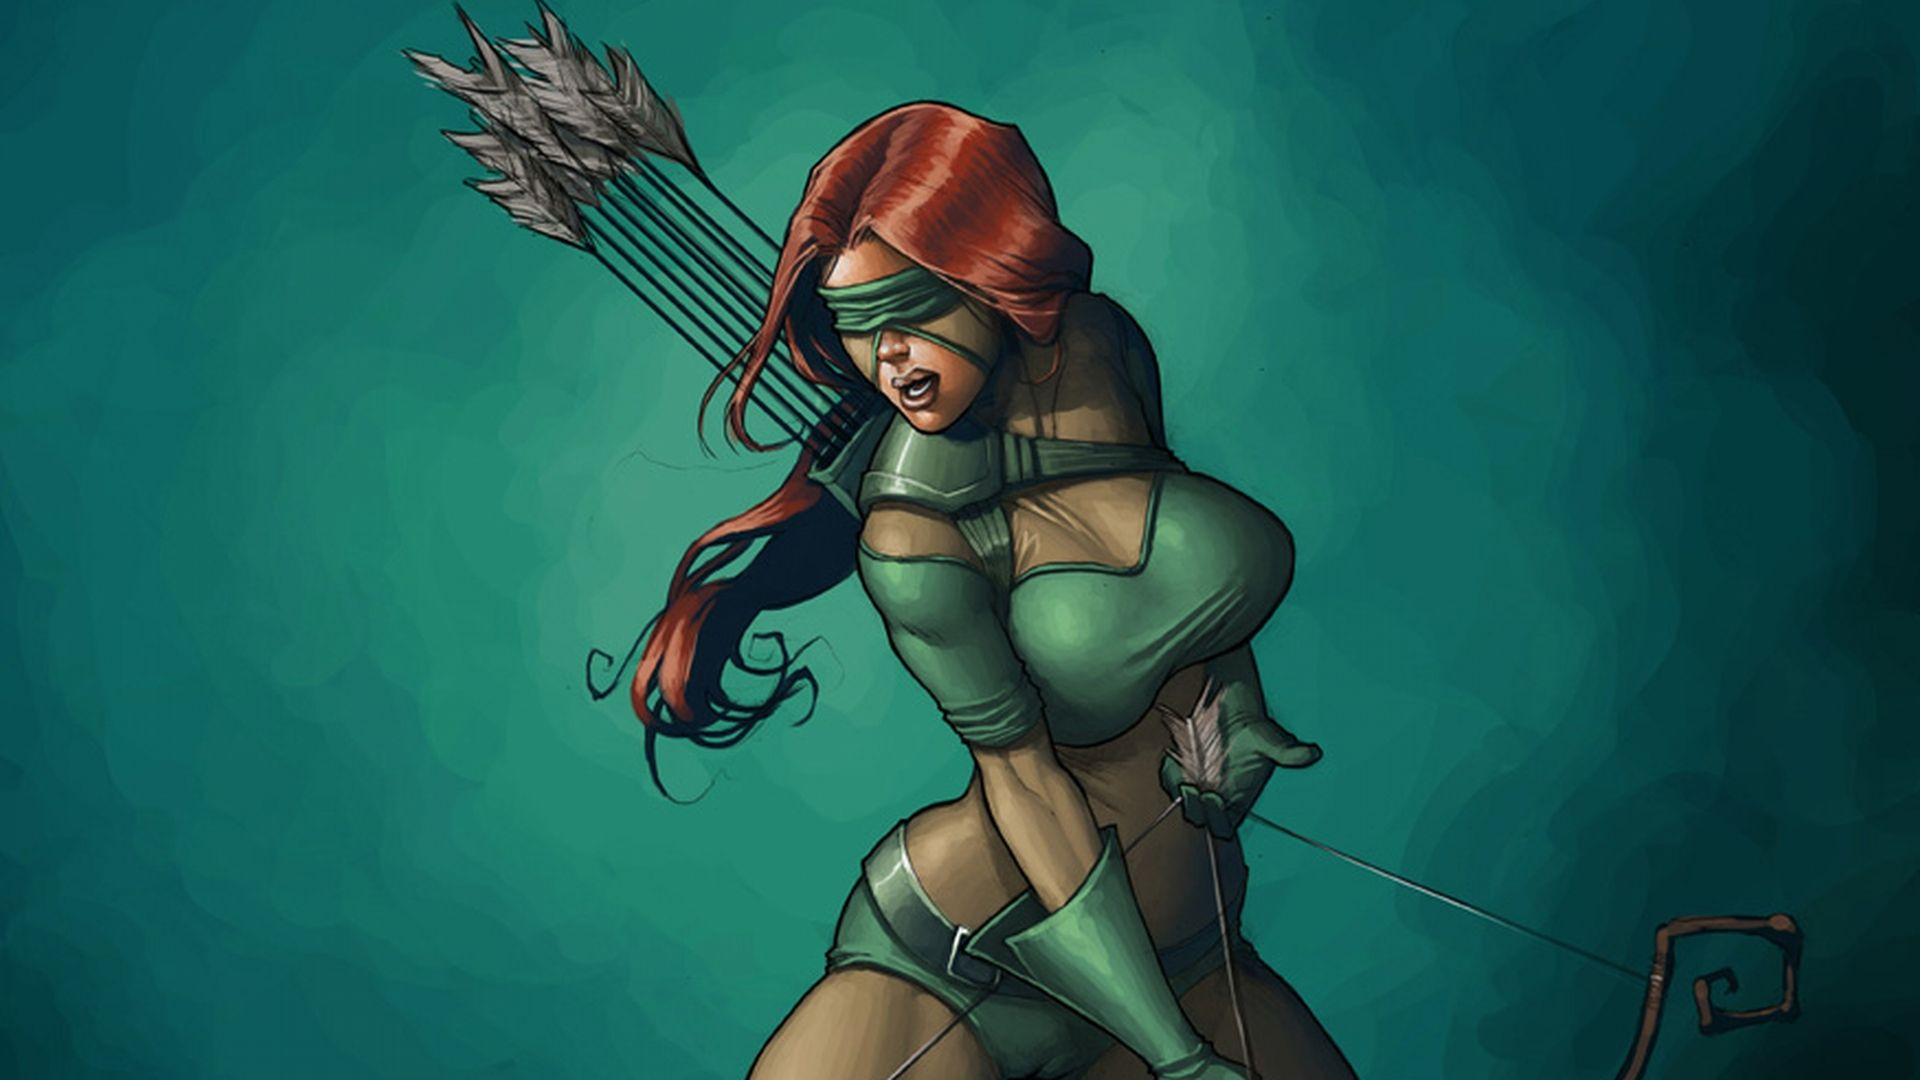 Female Archer Wallpapers - Top Free Female Archer Backgrounds -  WallpaperAccess